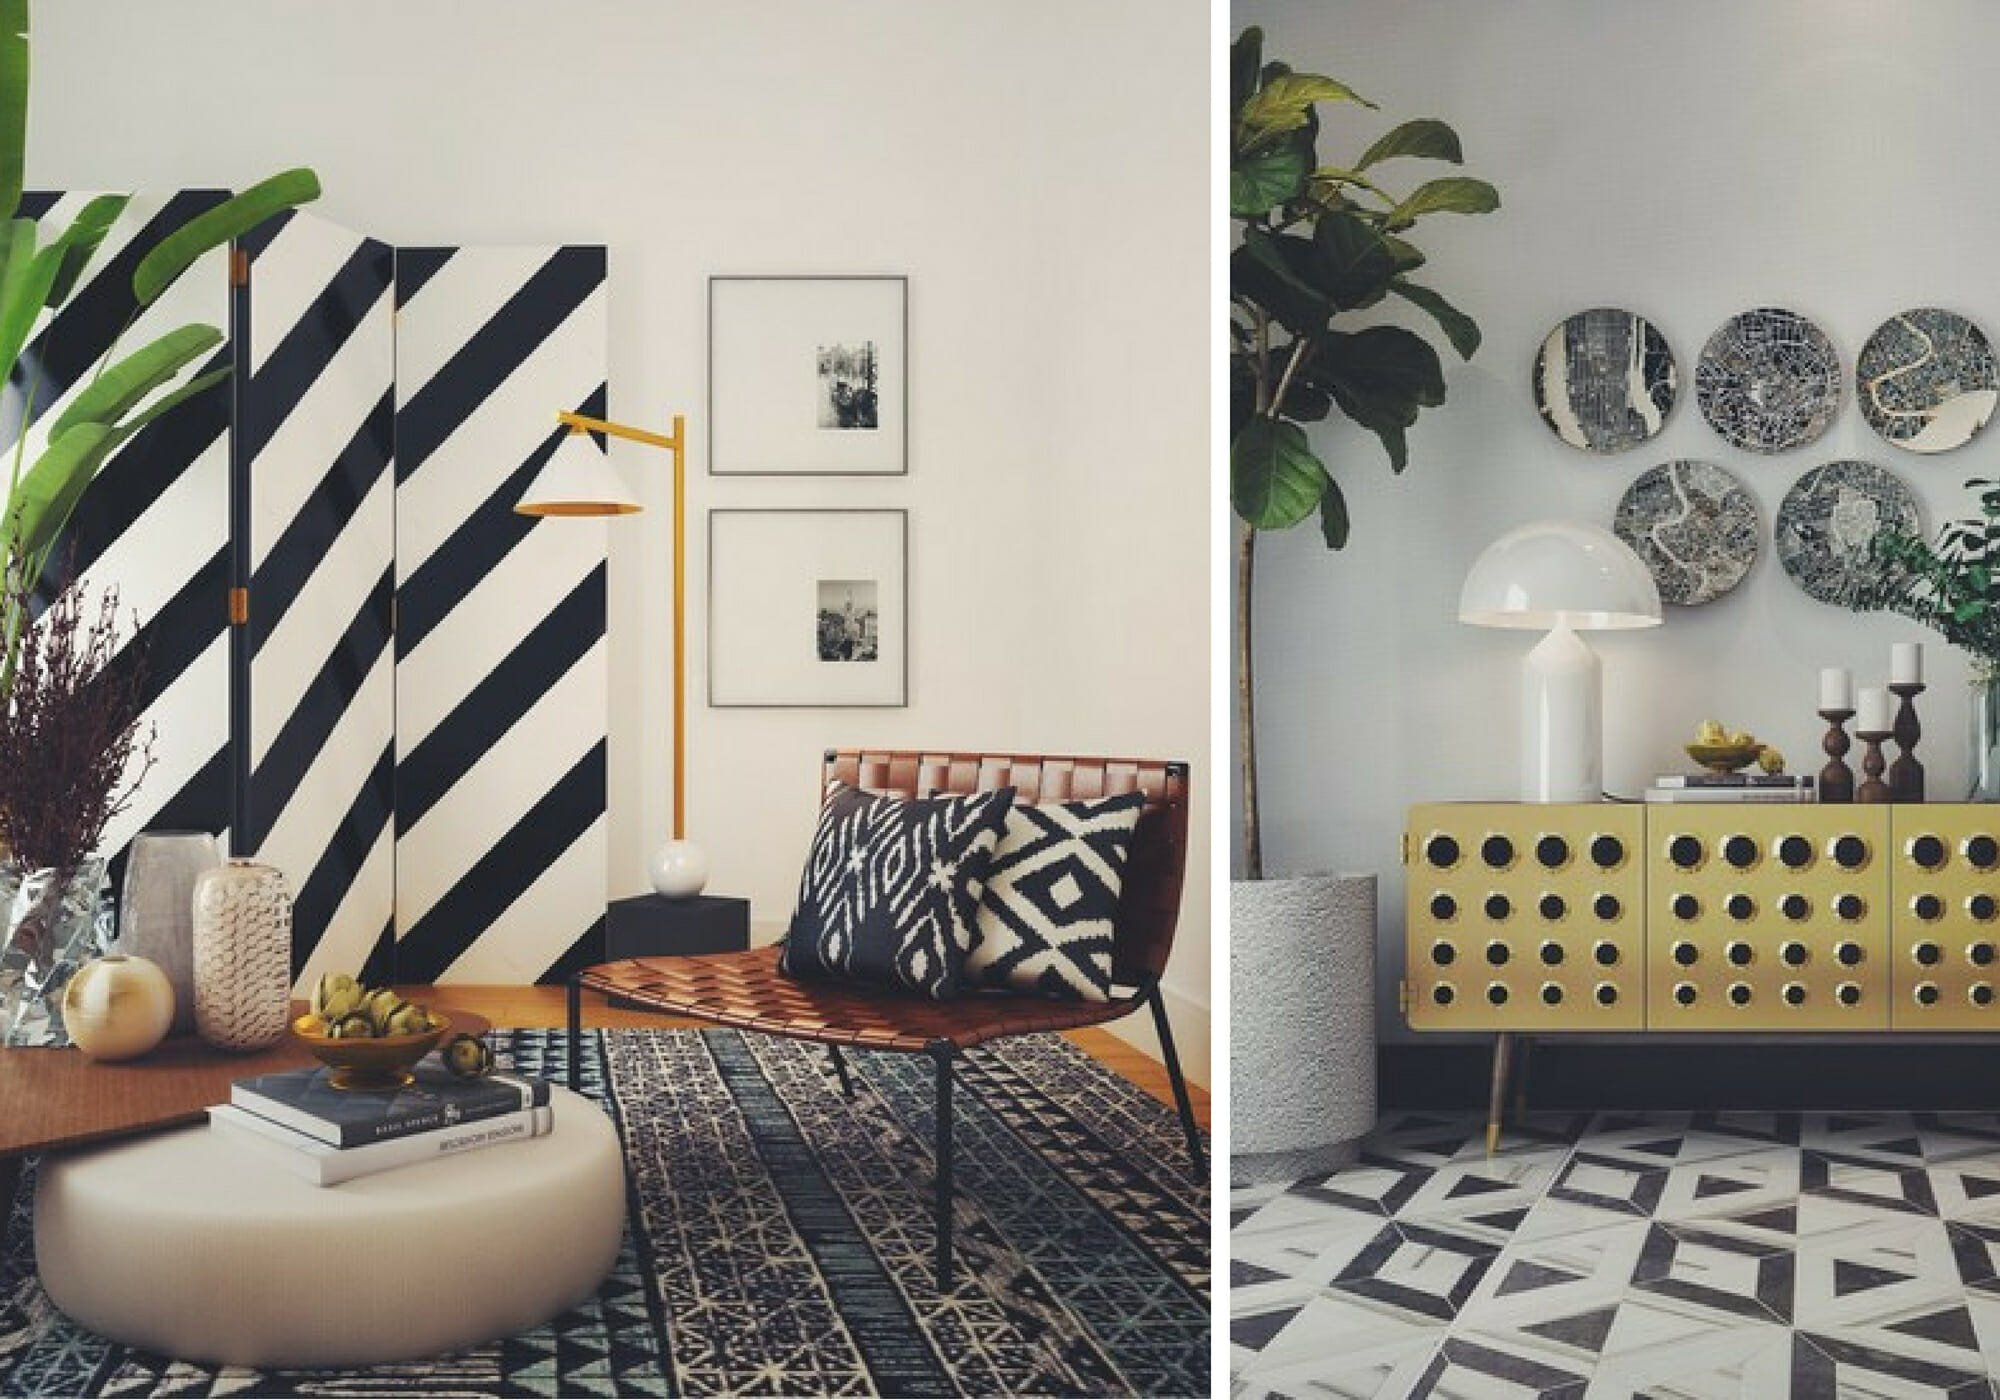 eclectic interior design with pattern